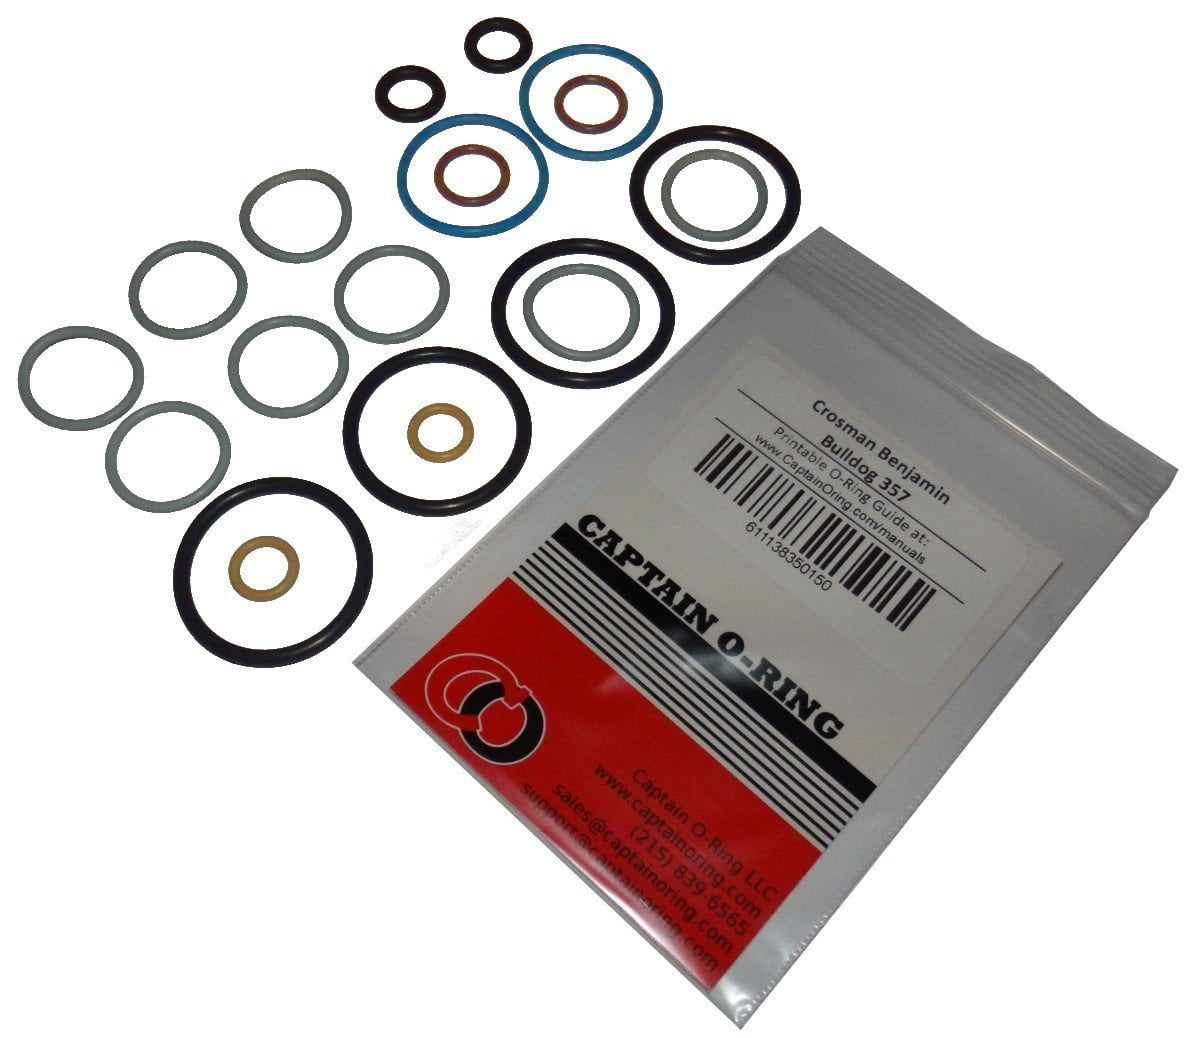 Crosman Benjamin Bulldog 357 Air Rifle Full 2x COLOR CODED Captain O-Ring Rebuild Kit by